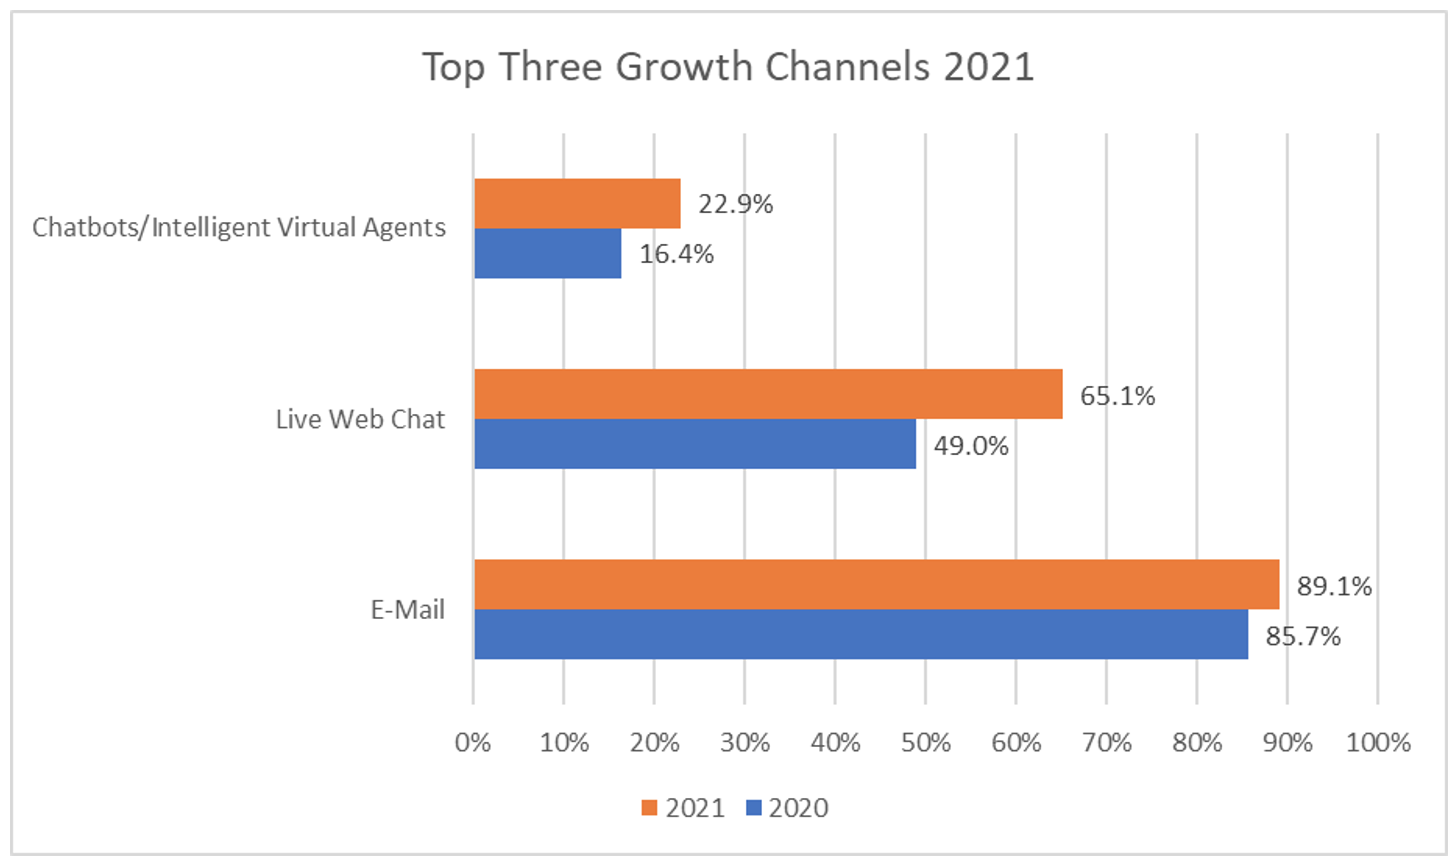 Top Three Growth Channels 2021